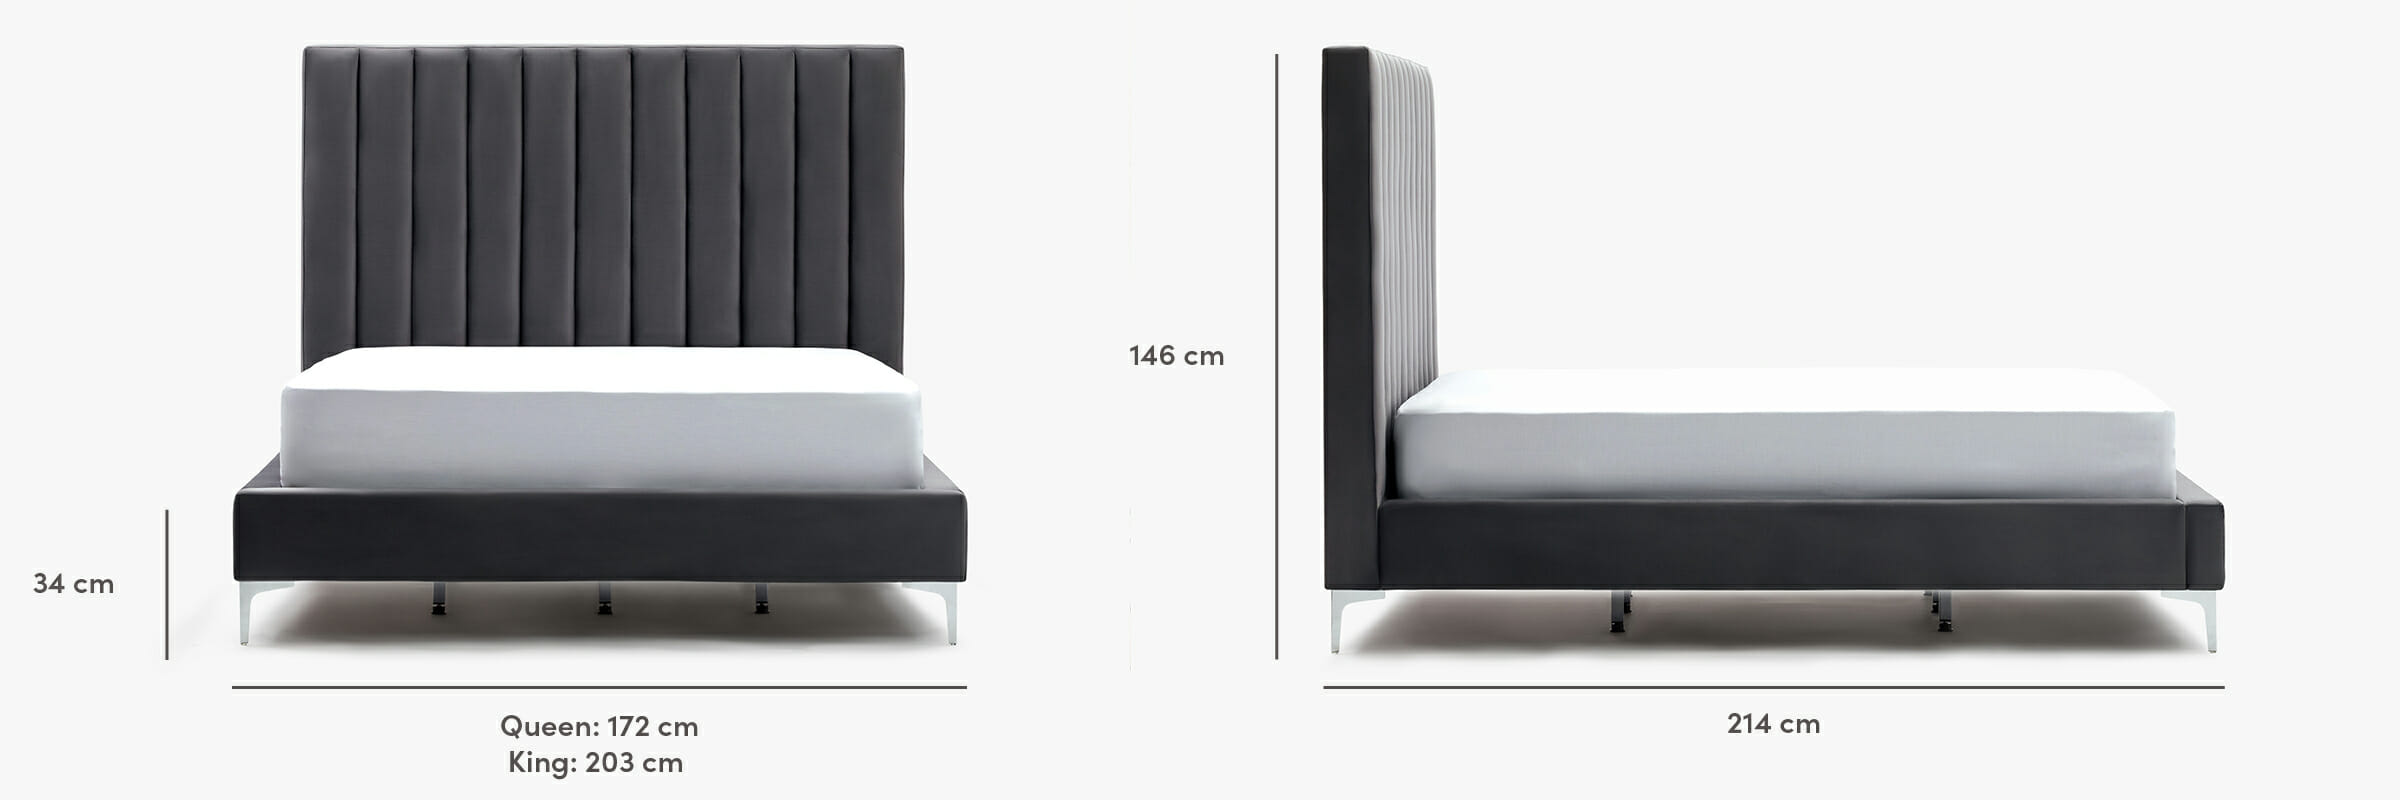 Parker bed dimensions